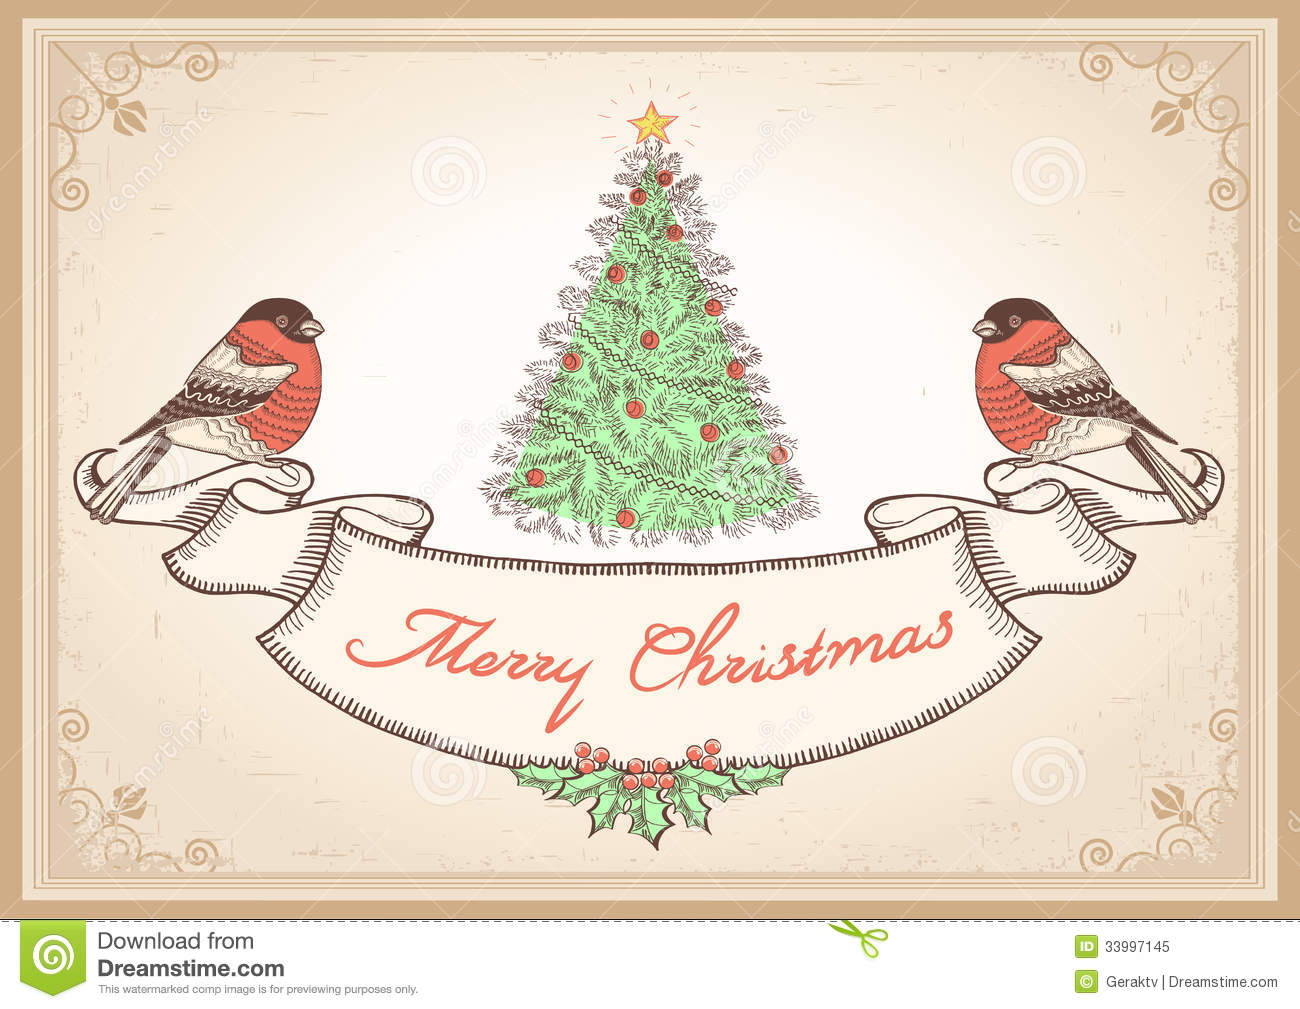 Vintage Christmas Card With Bullfinches.Vector Ill Royalty Free ...